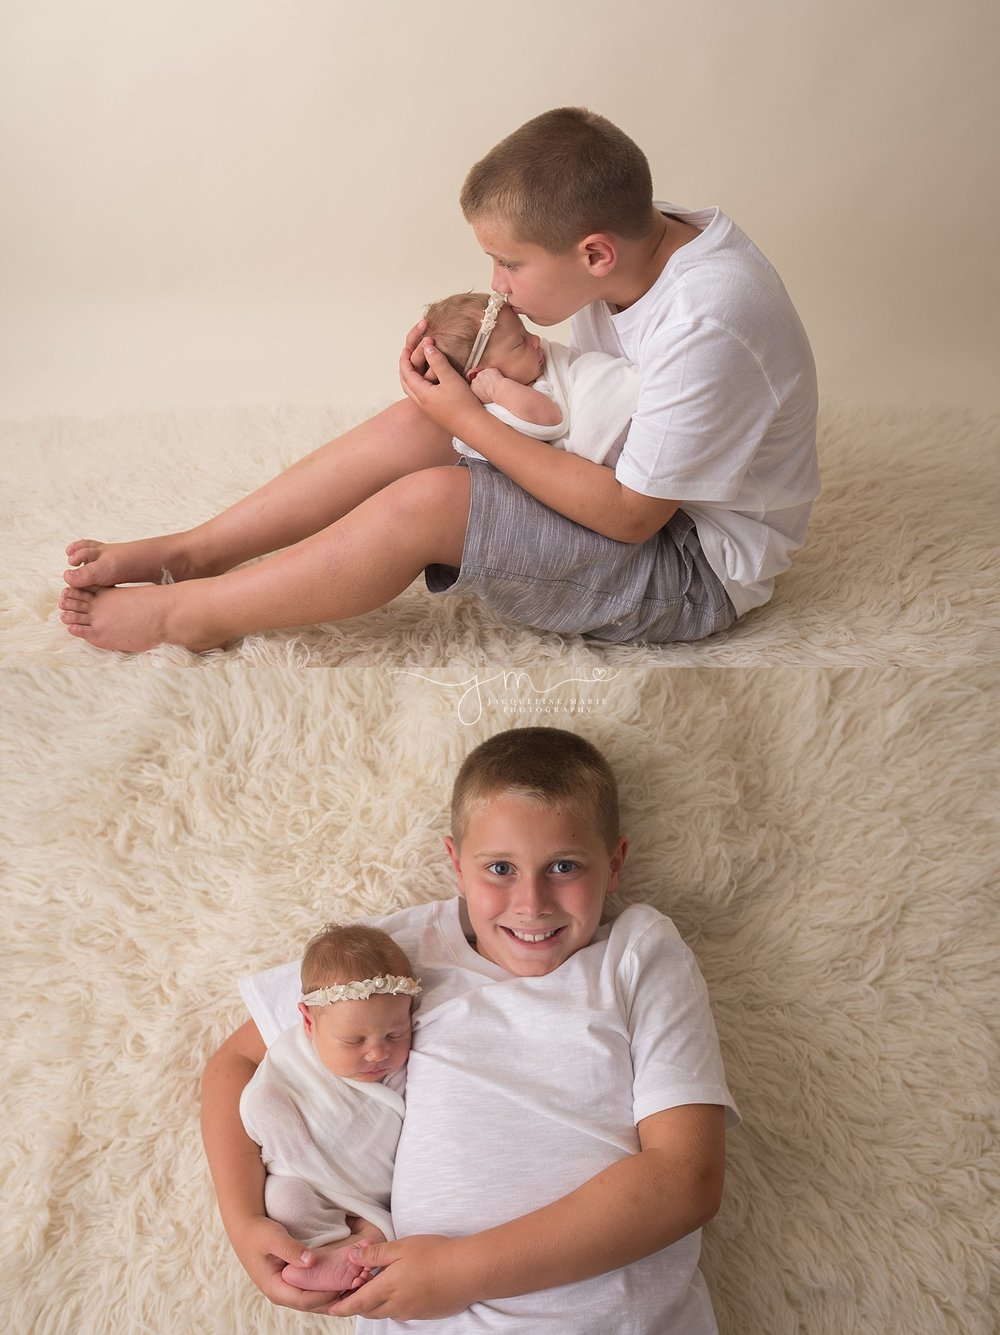 Big brother holds newborn baby sister on cream fur rug for portrait at Jacqueline Marie Photography in Columbus Ohio